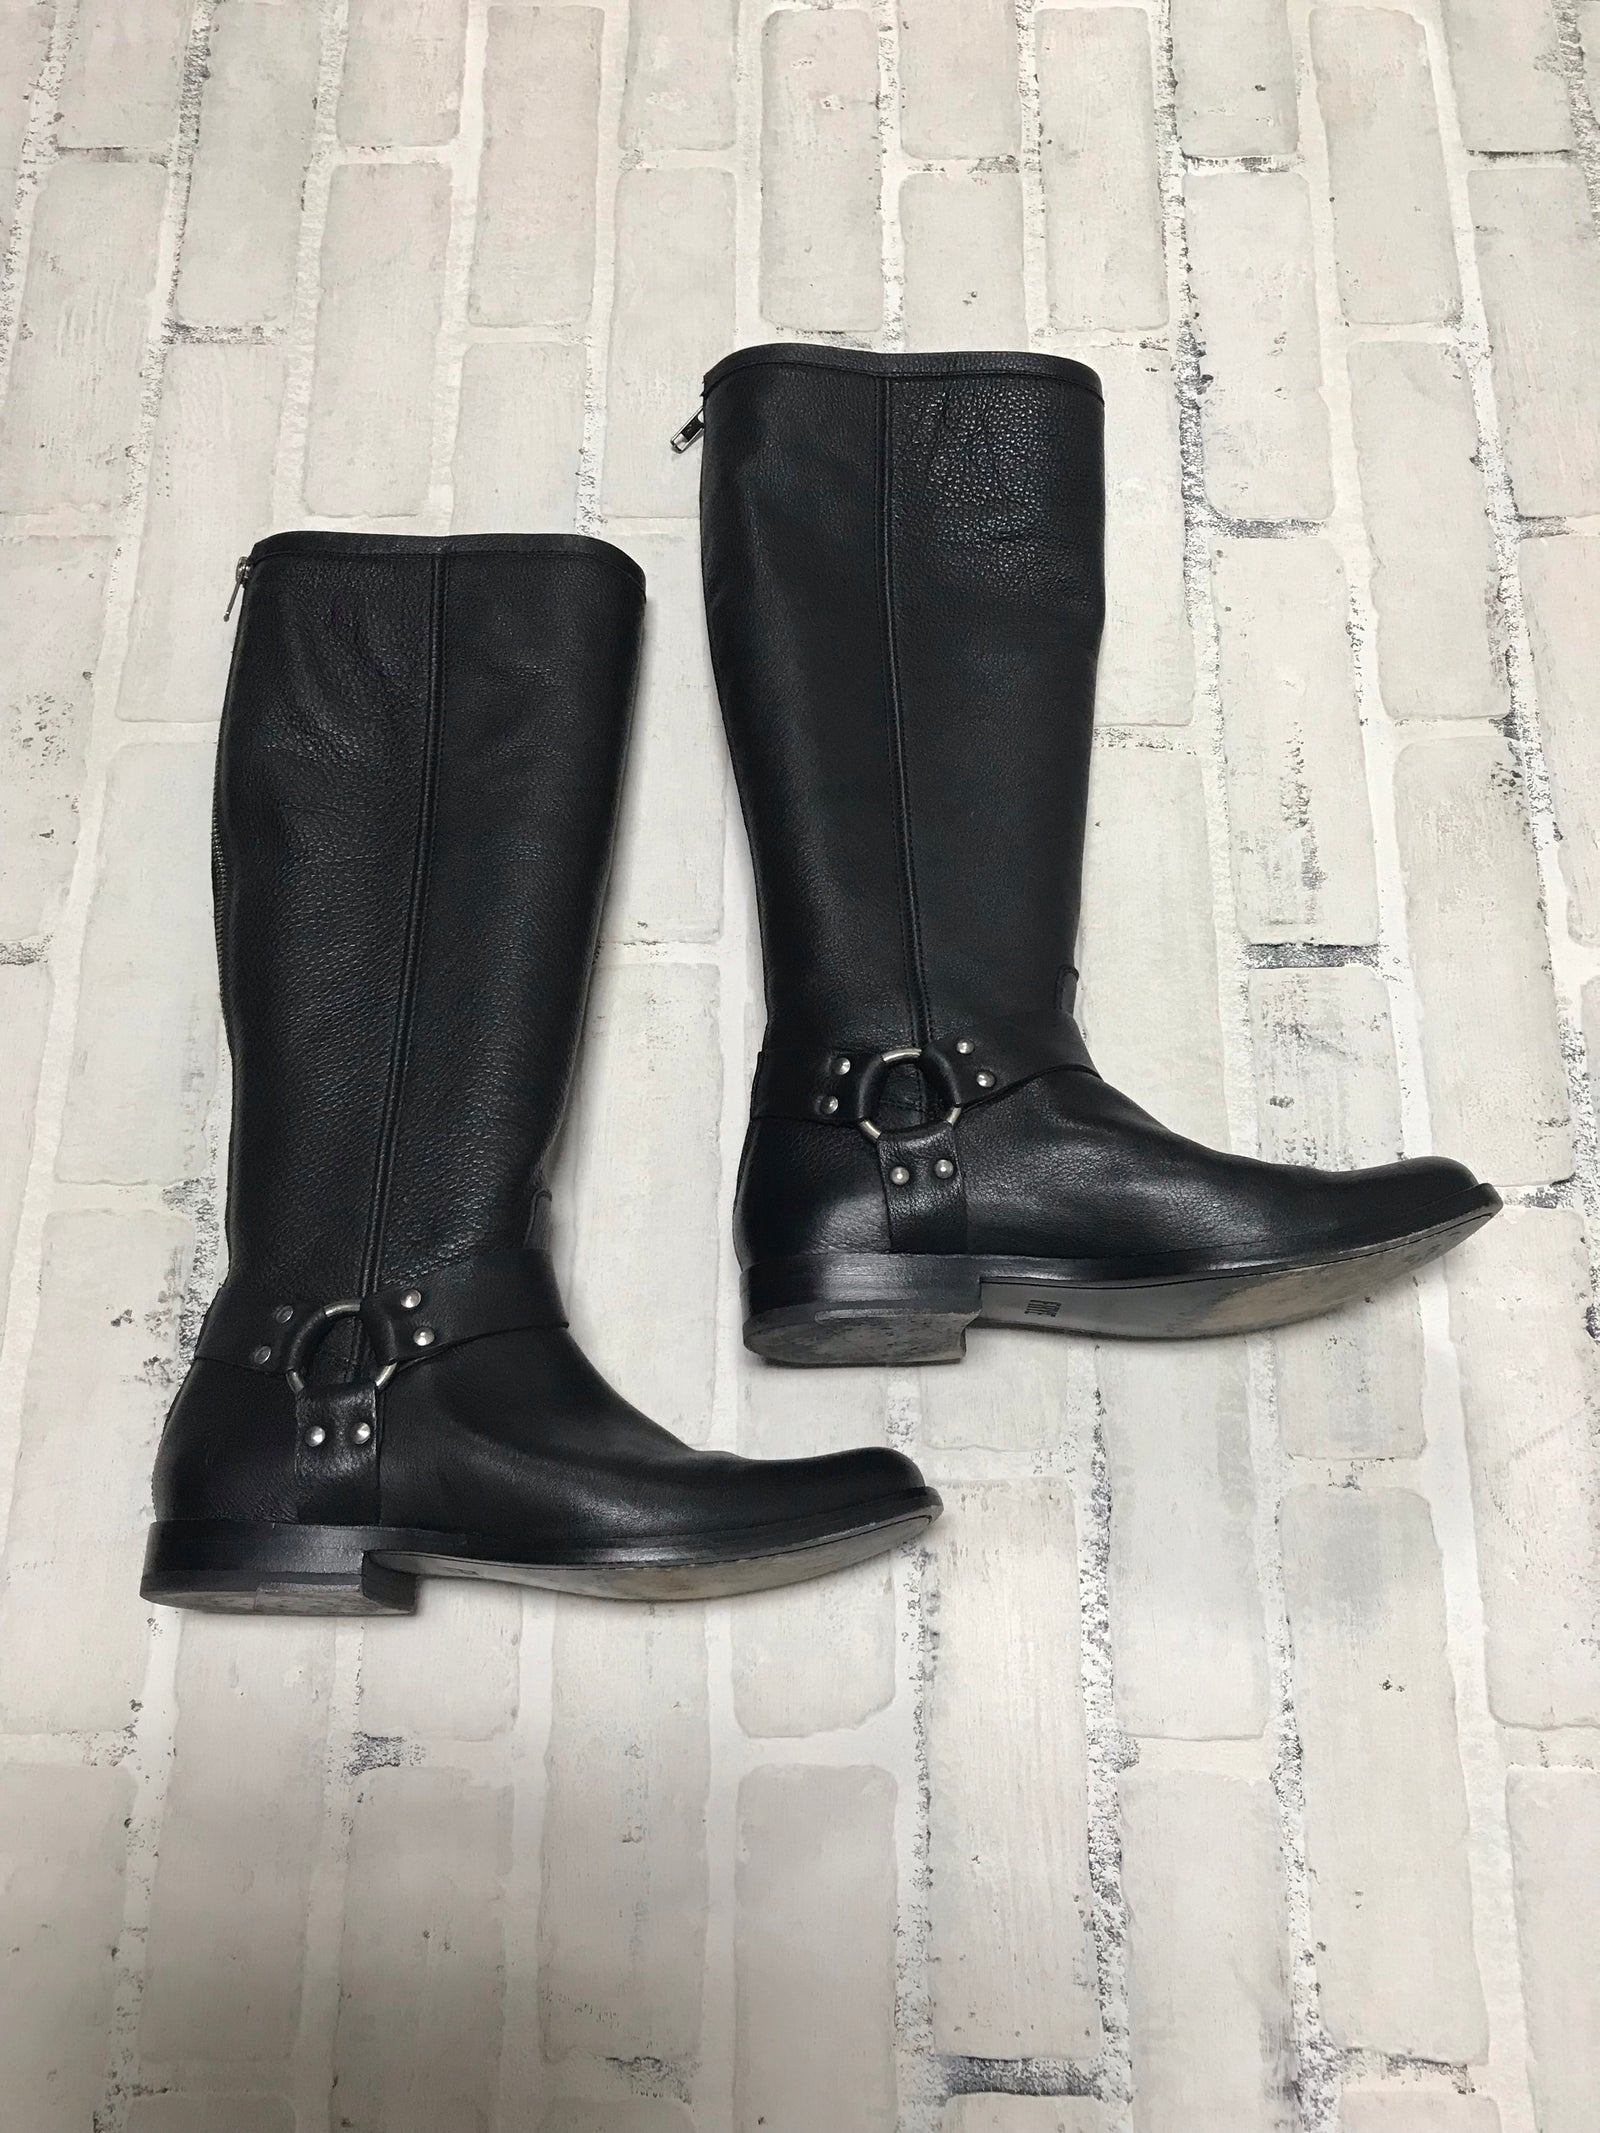 Frye Phillip Riding Boots (8.5)